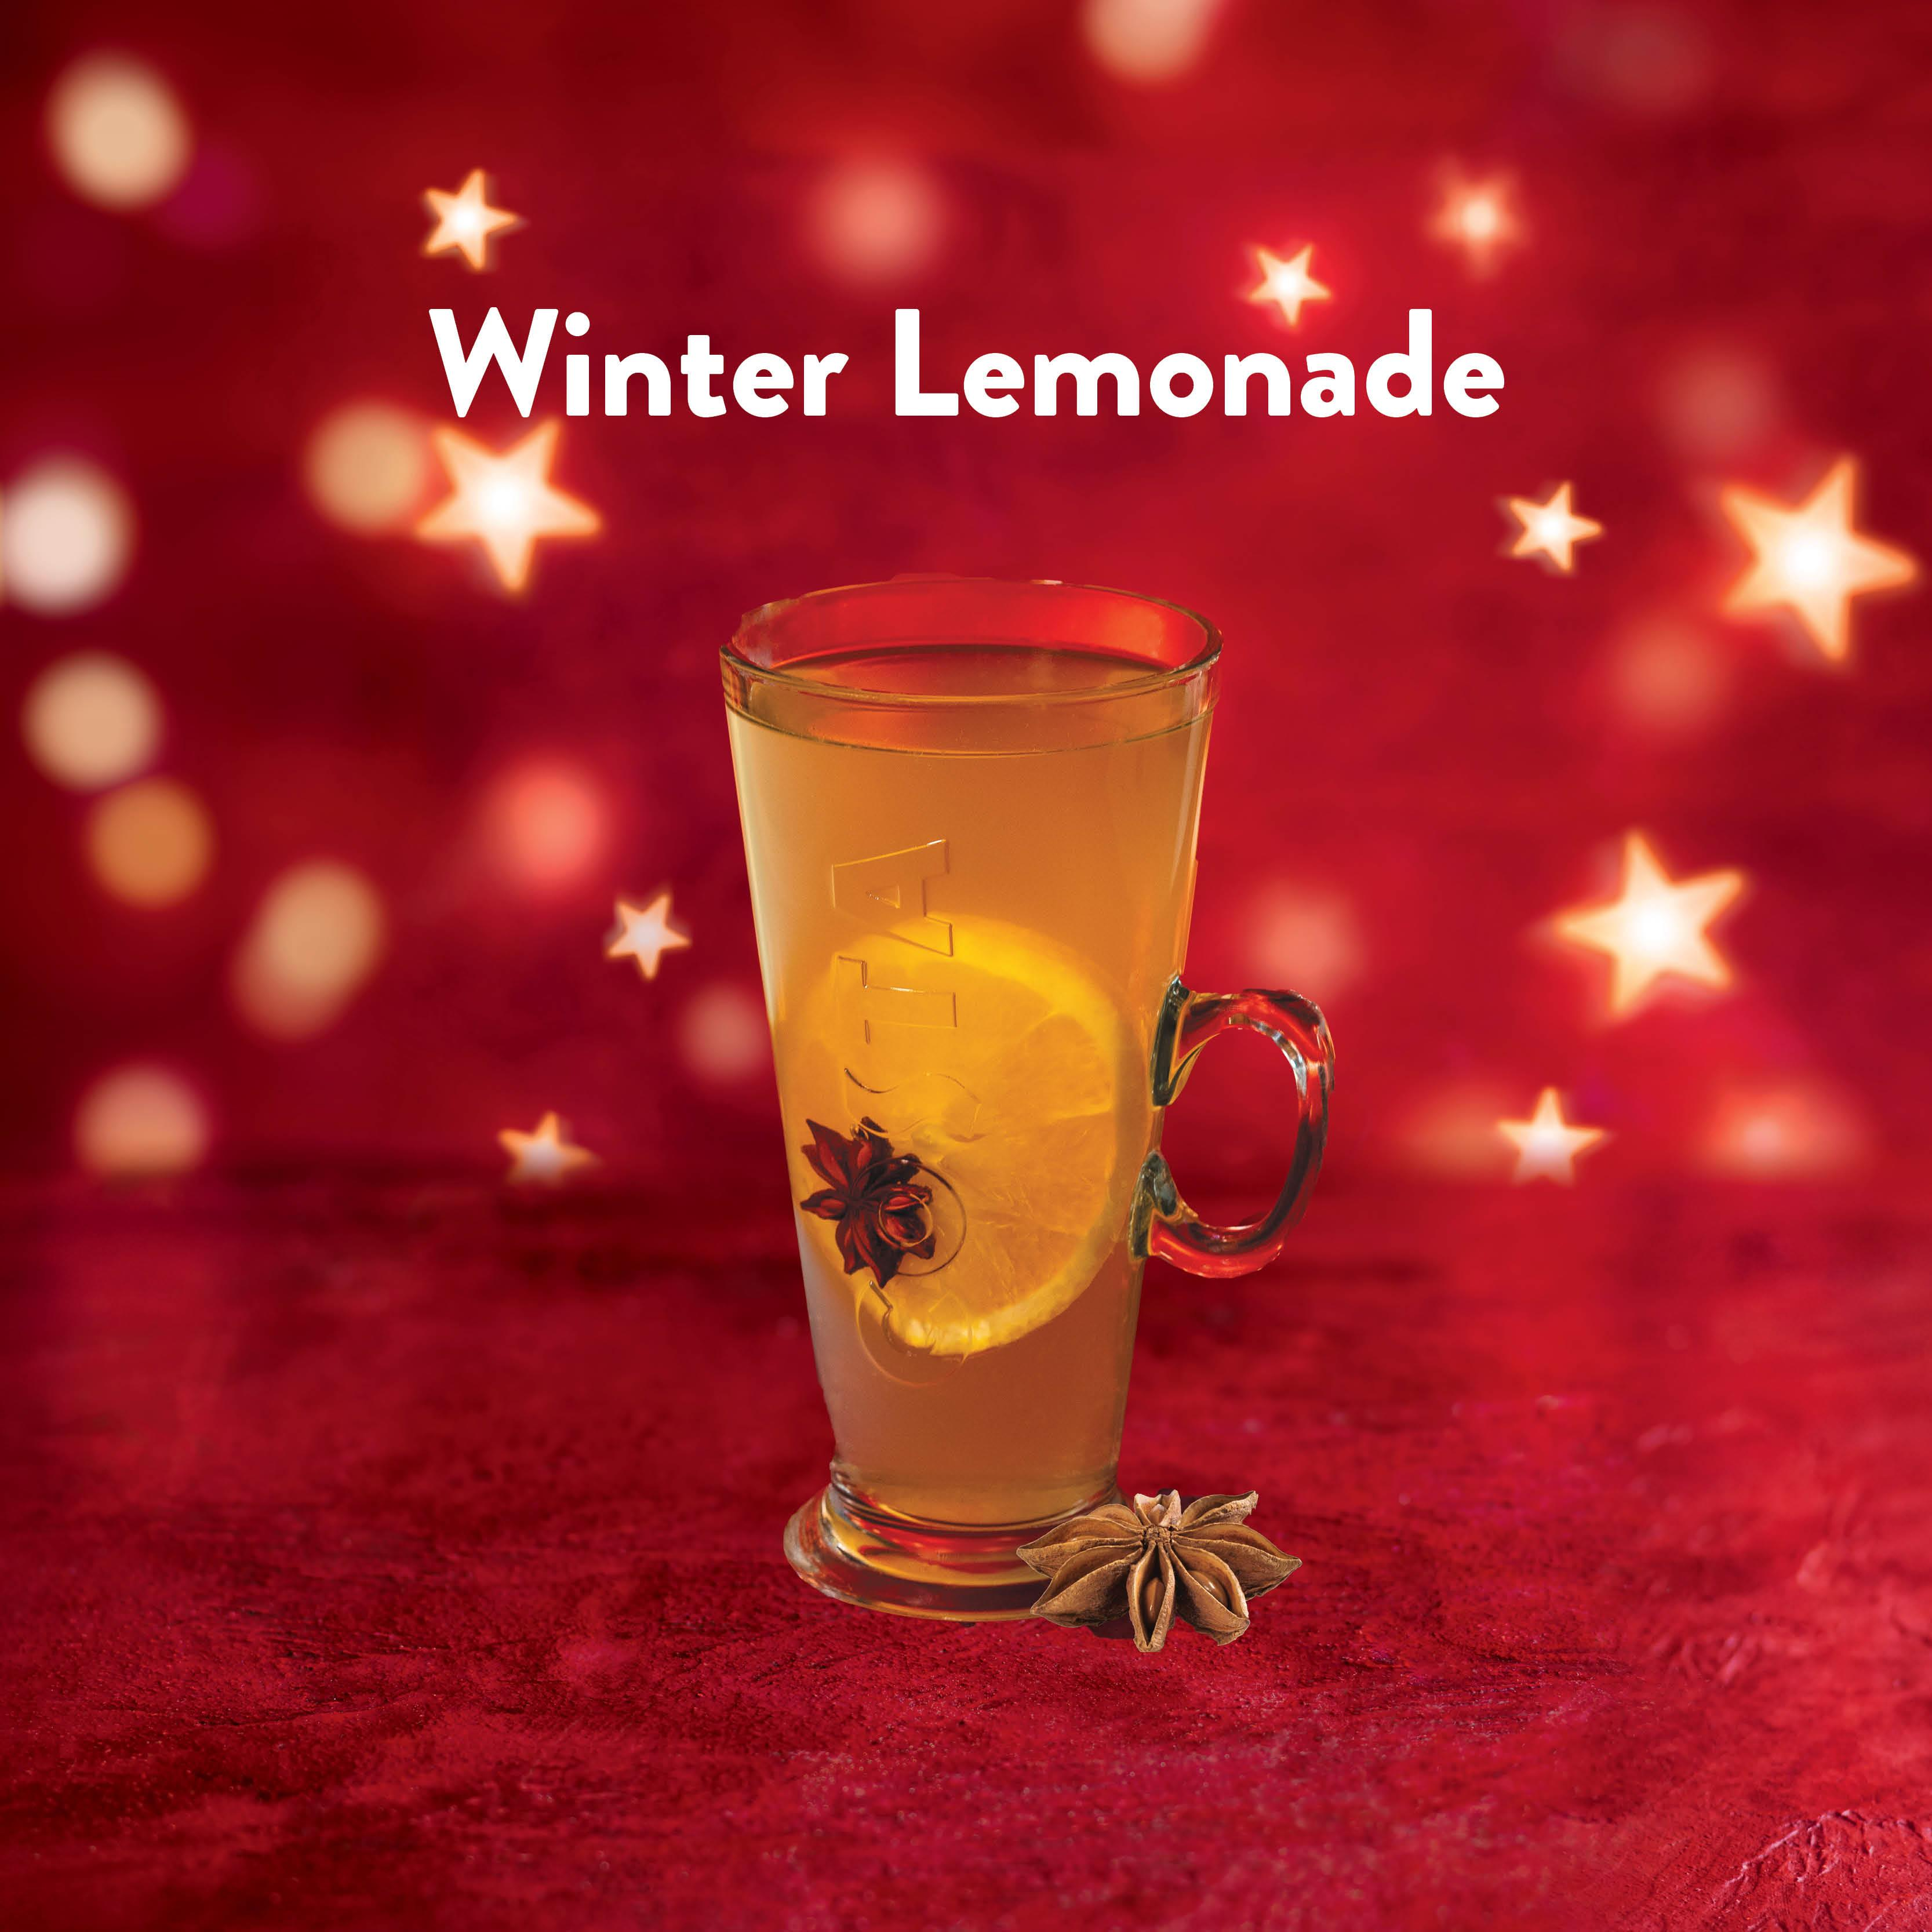 Winter Lemonade